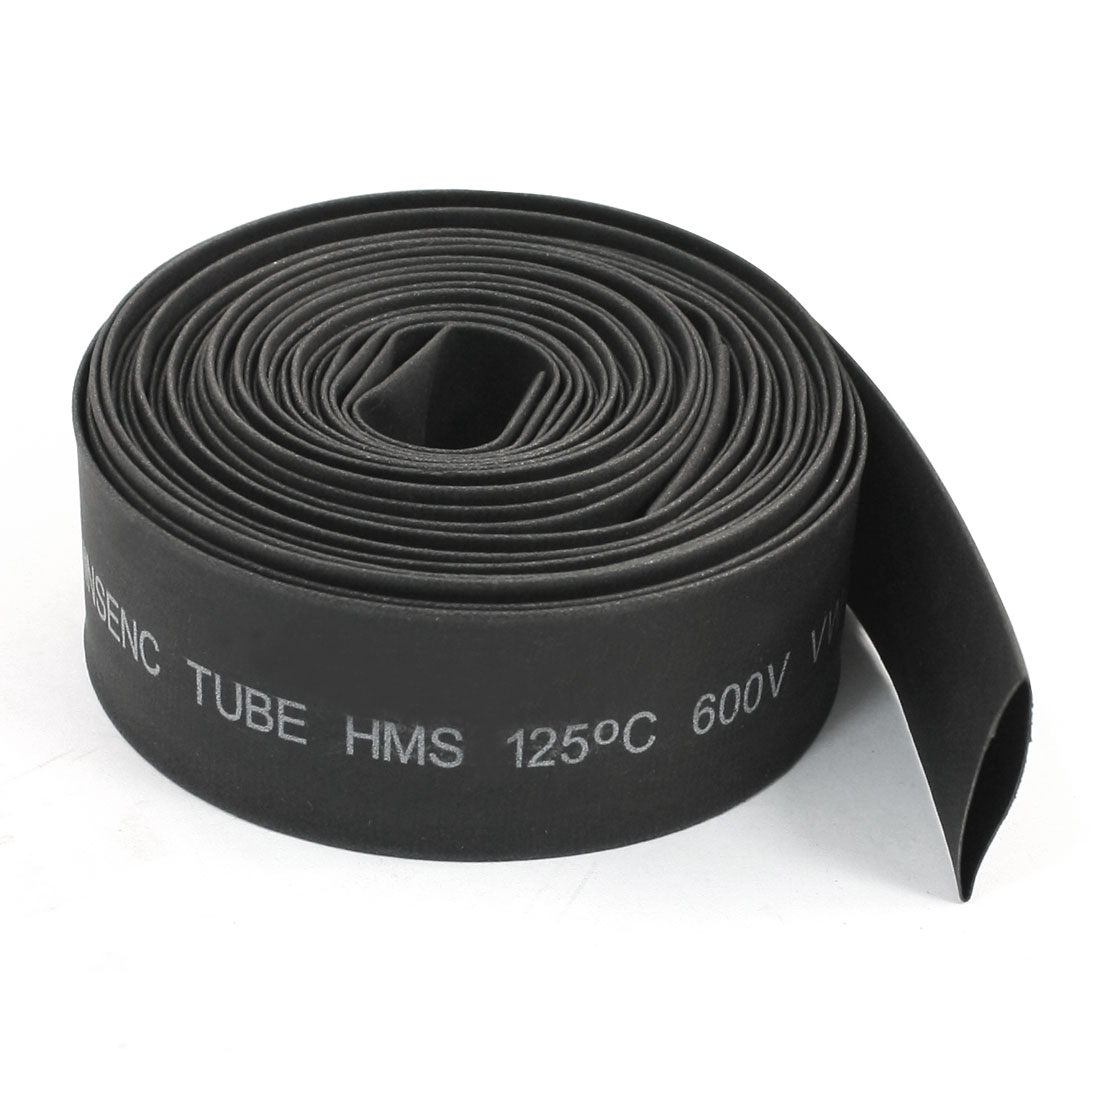 Gray Heat Shrinkable Tubing Shrink Tube 18mm 9mm 5M 16.4ft 600V 125C